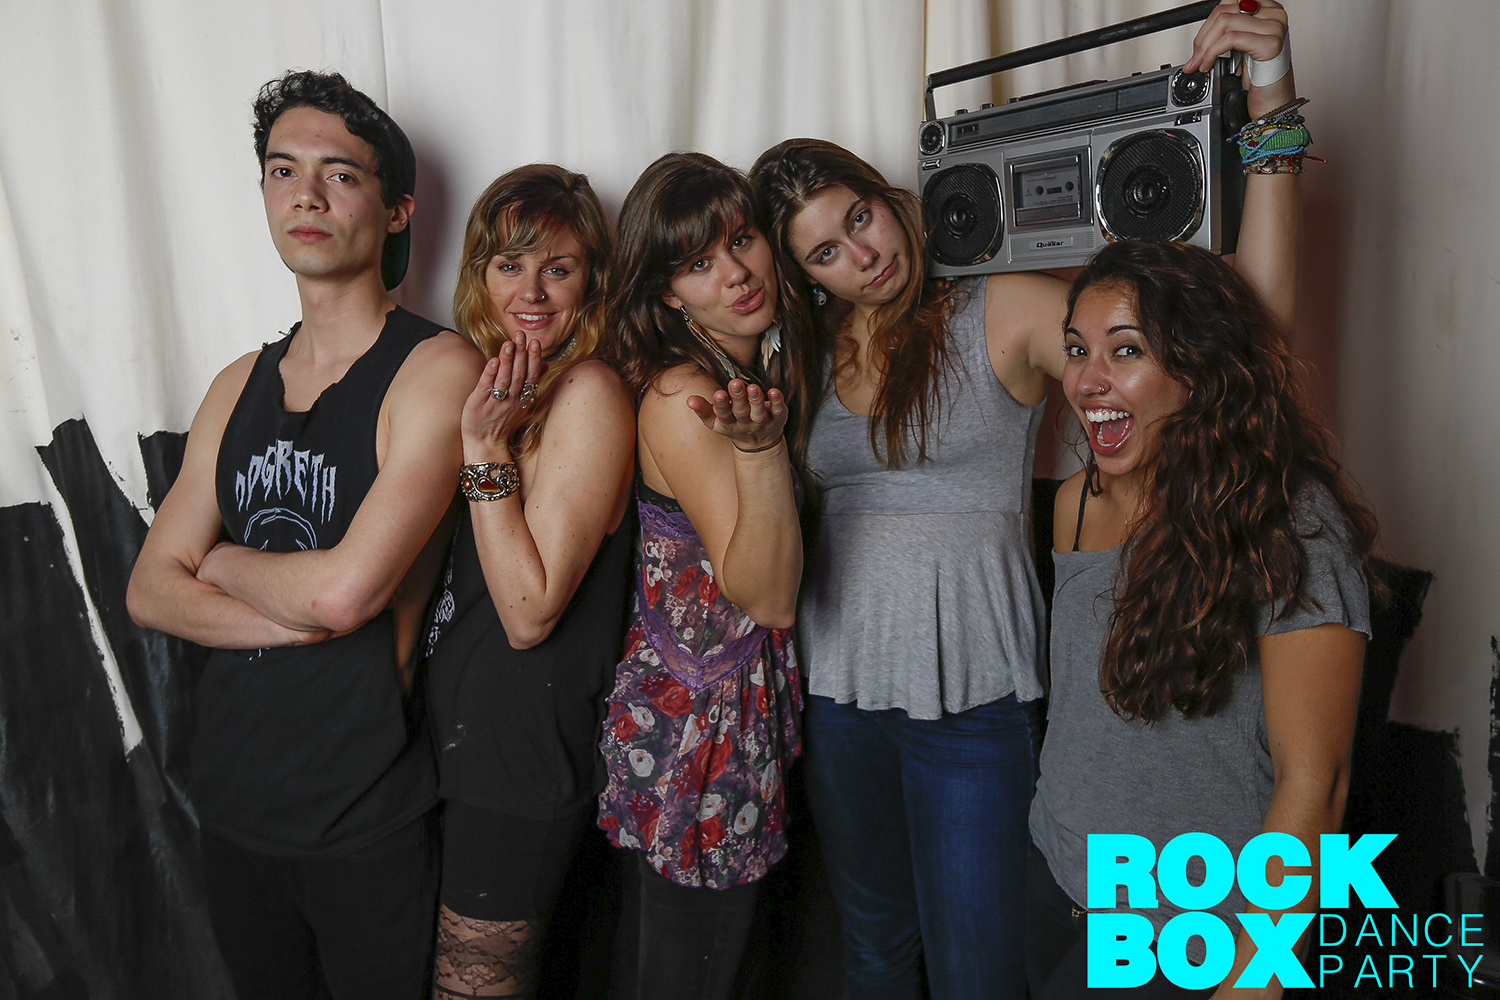 Rock box feb 2015-0182.jpg